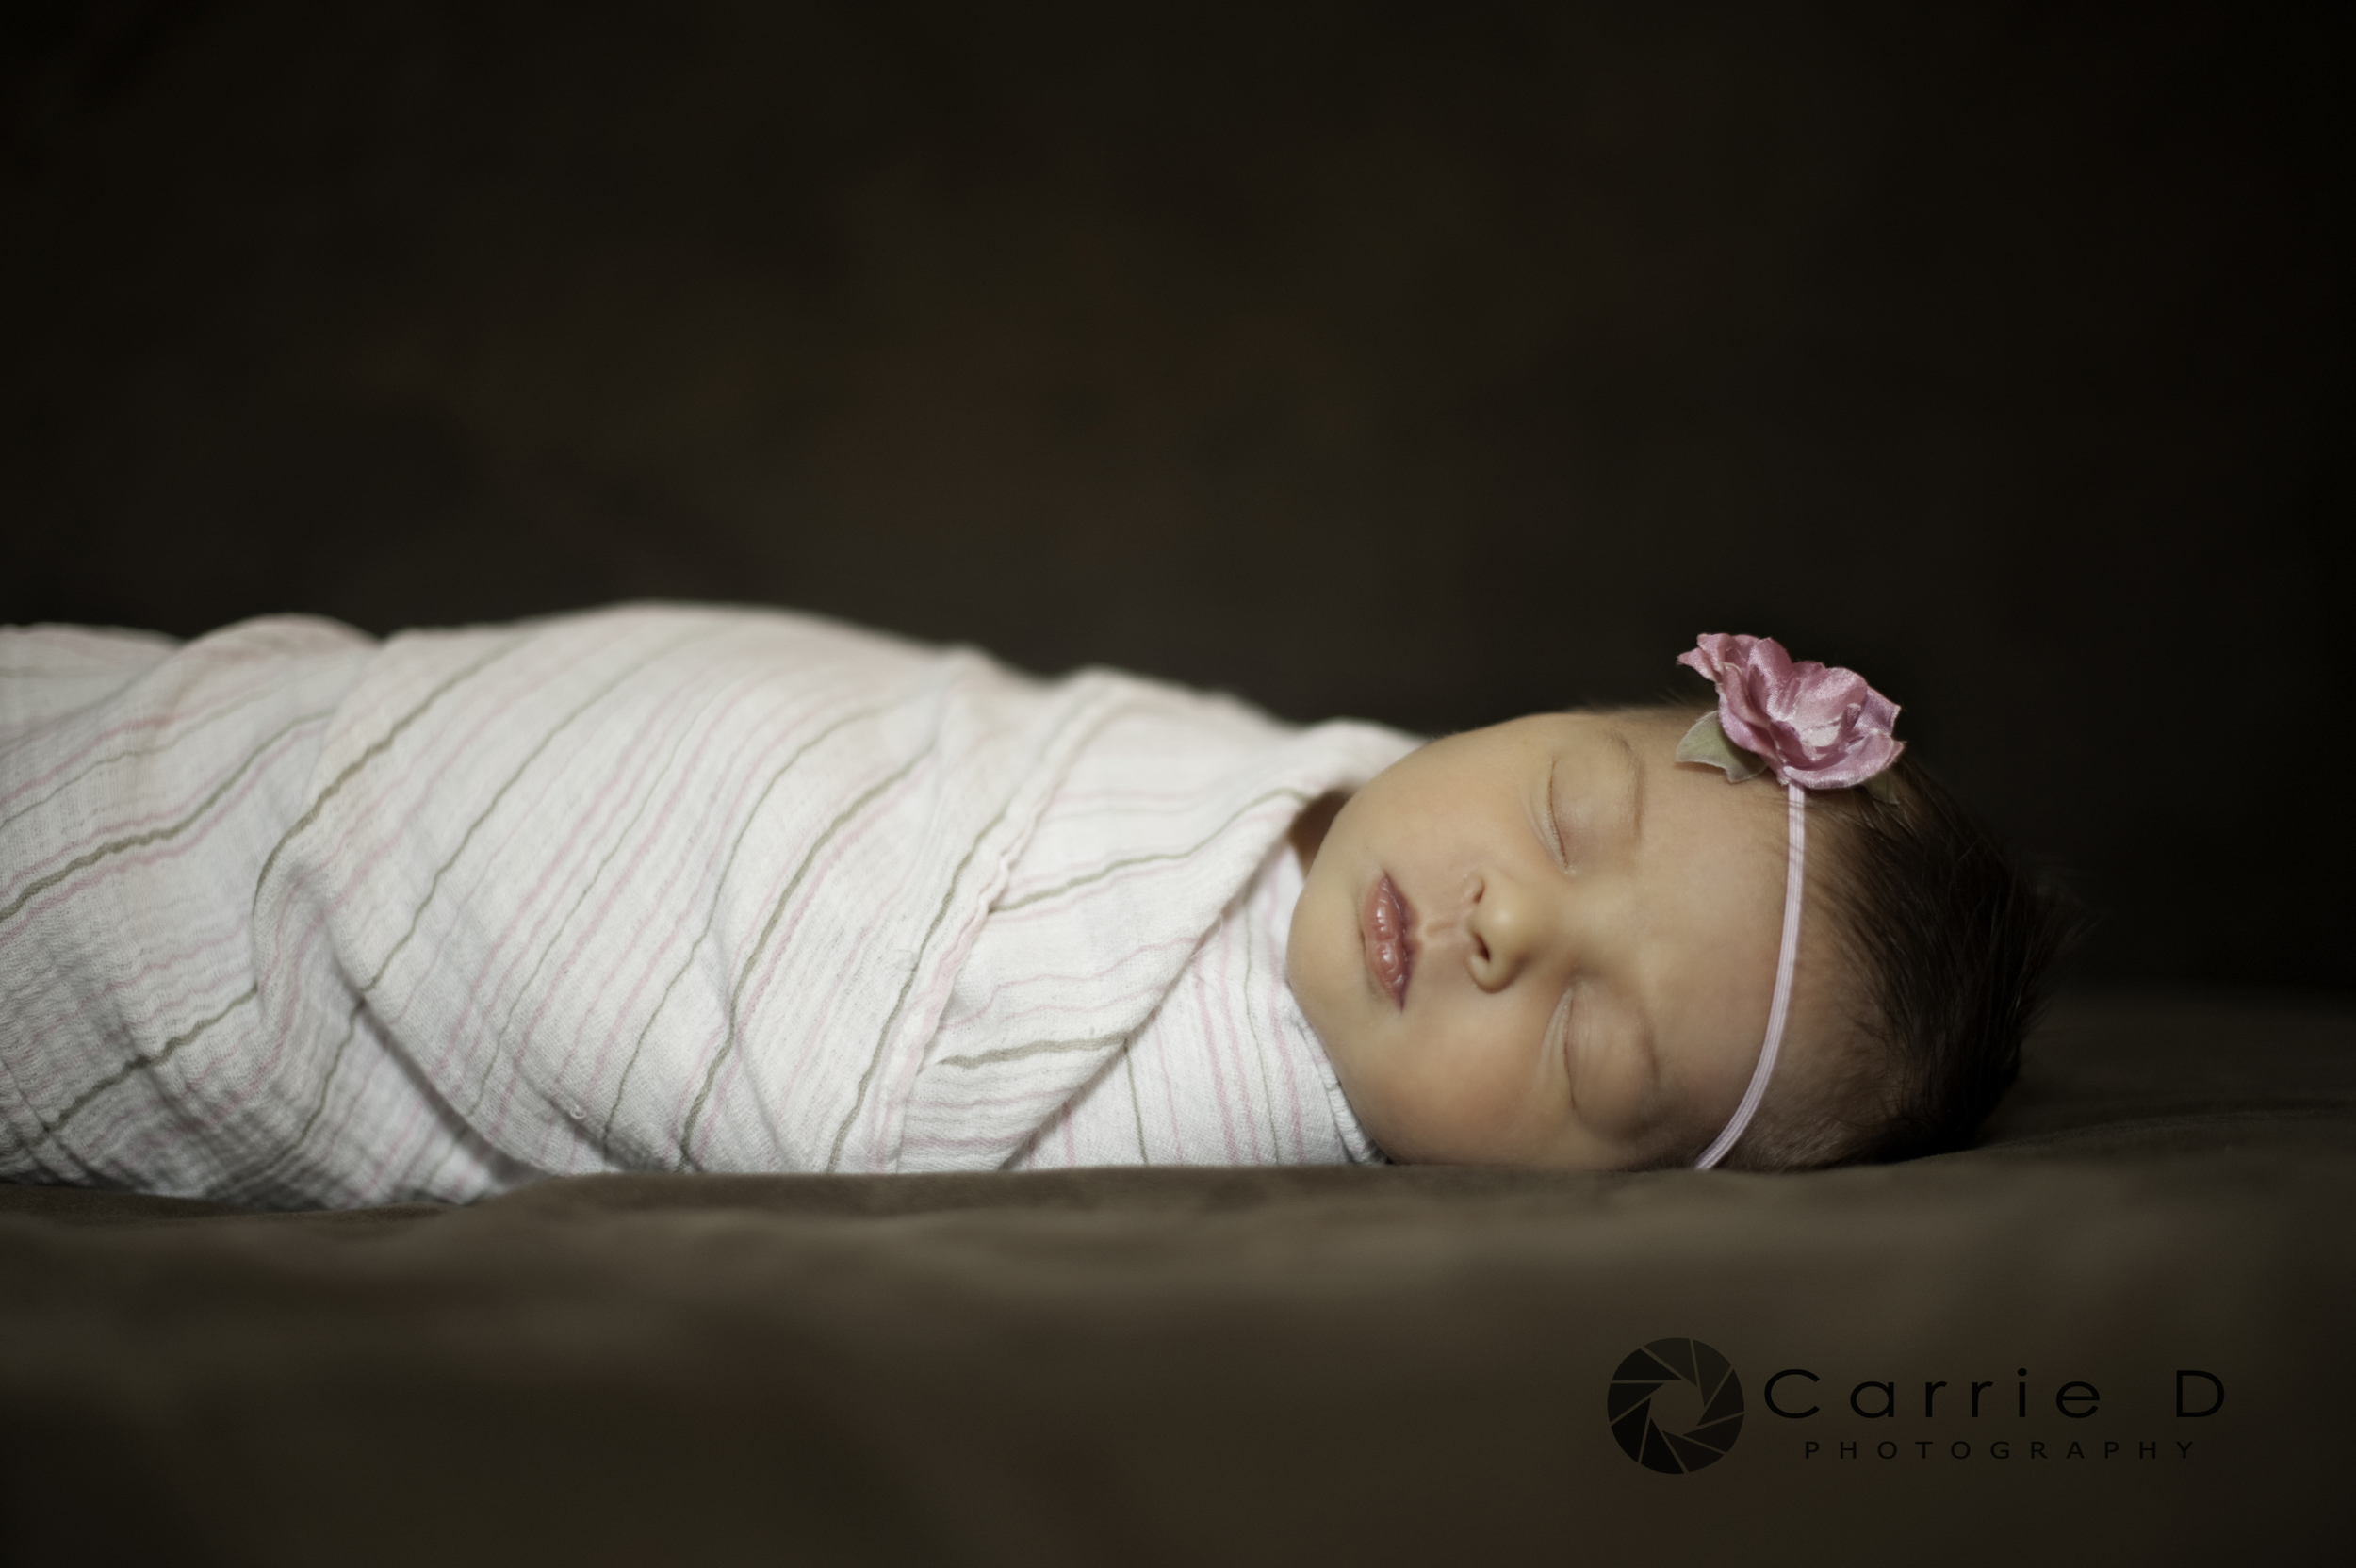 Howard County Photographer – Howard County Portrait Photographer – Howard County Newborn Photographer – Howard County Baby Photographer - Howard County Infant Photographer Howard County Child Photographer – Howard County Sibling Photographer – Howard County Natural Light Photographer – Howard County Lifestyle Photographer – Howard County Natural Light Portrait Photographer - Maryland Photographer – Maryland Portrait Photographer – Maryland Newborn Photographer – Maryland Child Photographer – Maryland Sibling Photographer – Maryland Natural Light Photographer – Maryland Lifestyle Photographer – Maryland Natural Light Portrait Photographer - Maryland Baby Photographer - Maryland Infant Photographer - Annabelle_DSC_4844B